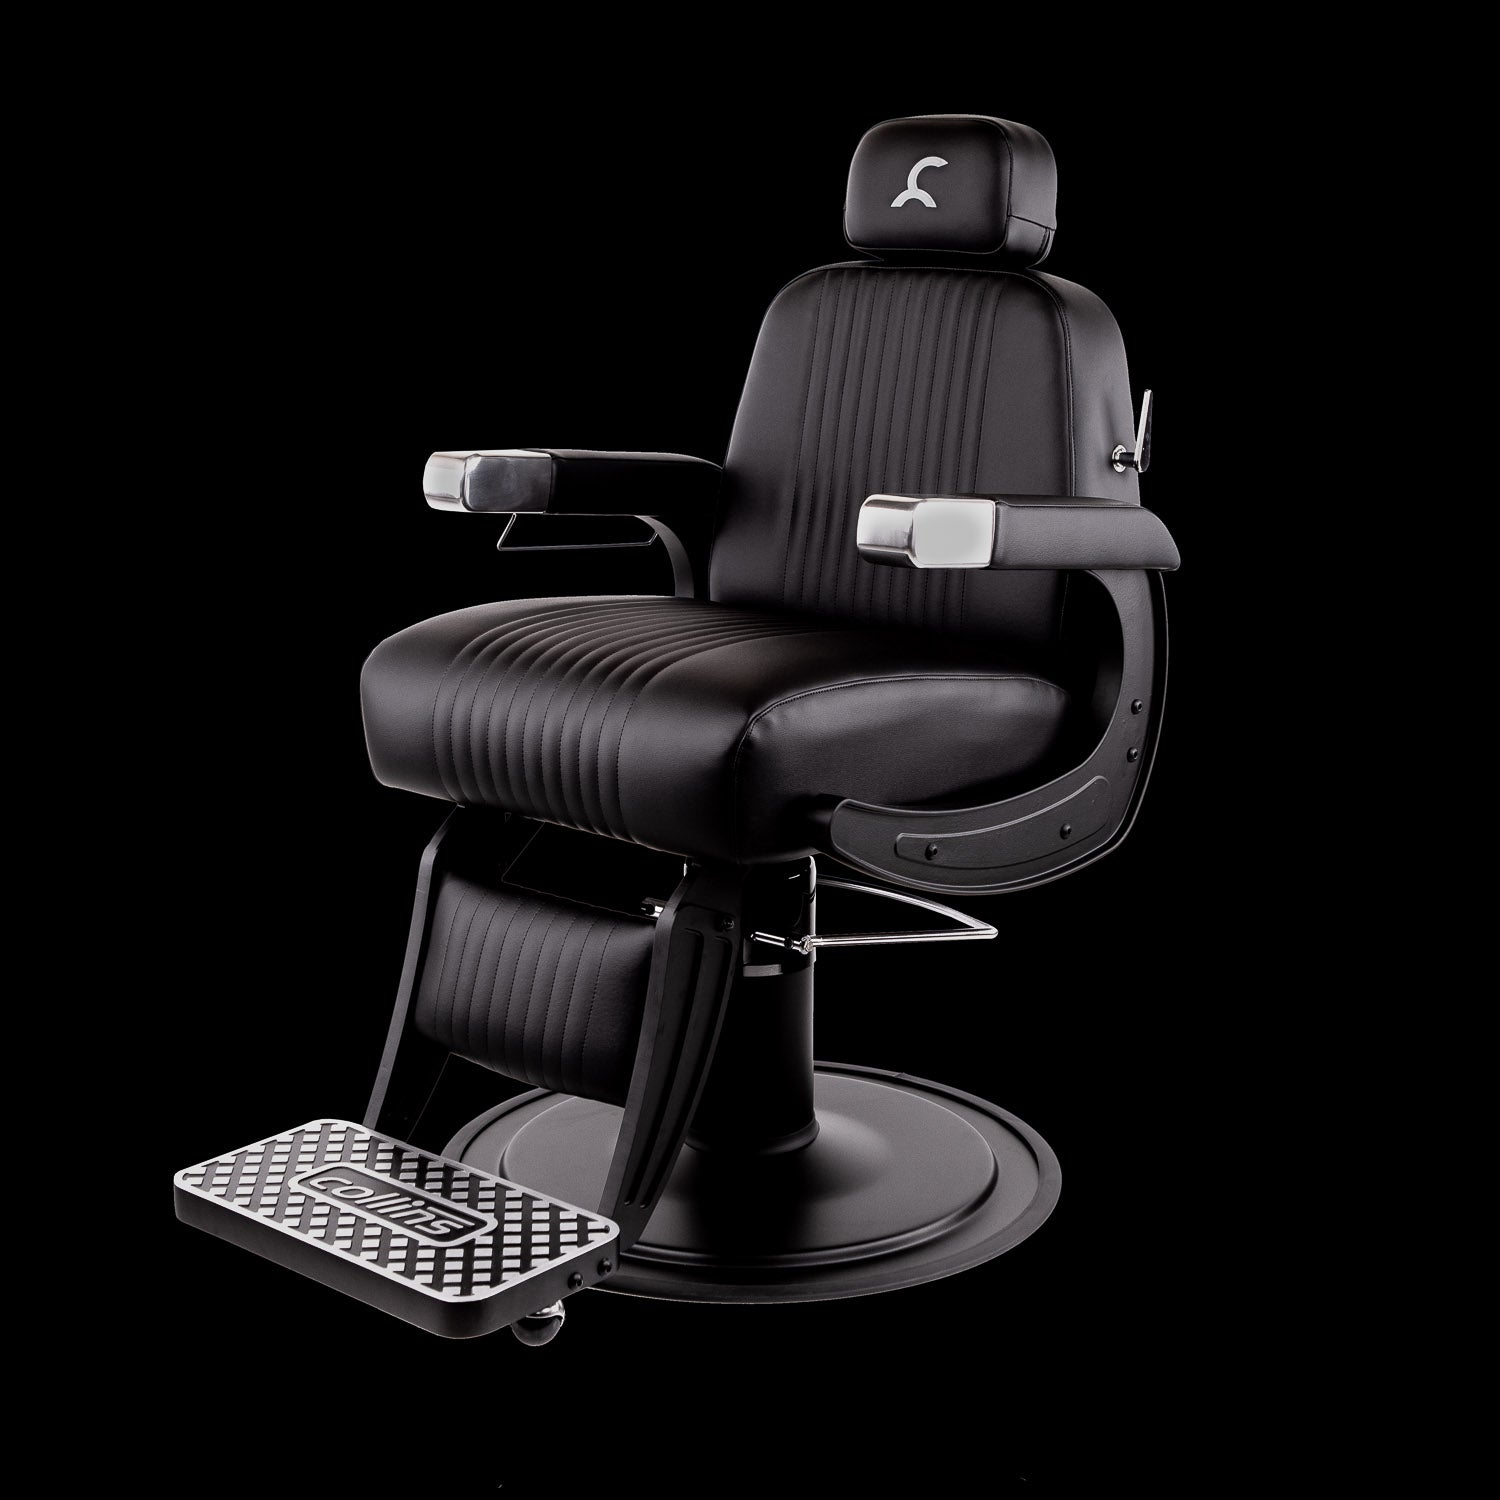 Blacked-Out Cobalt Omega Barber Chair